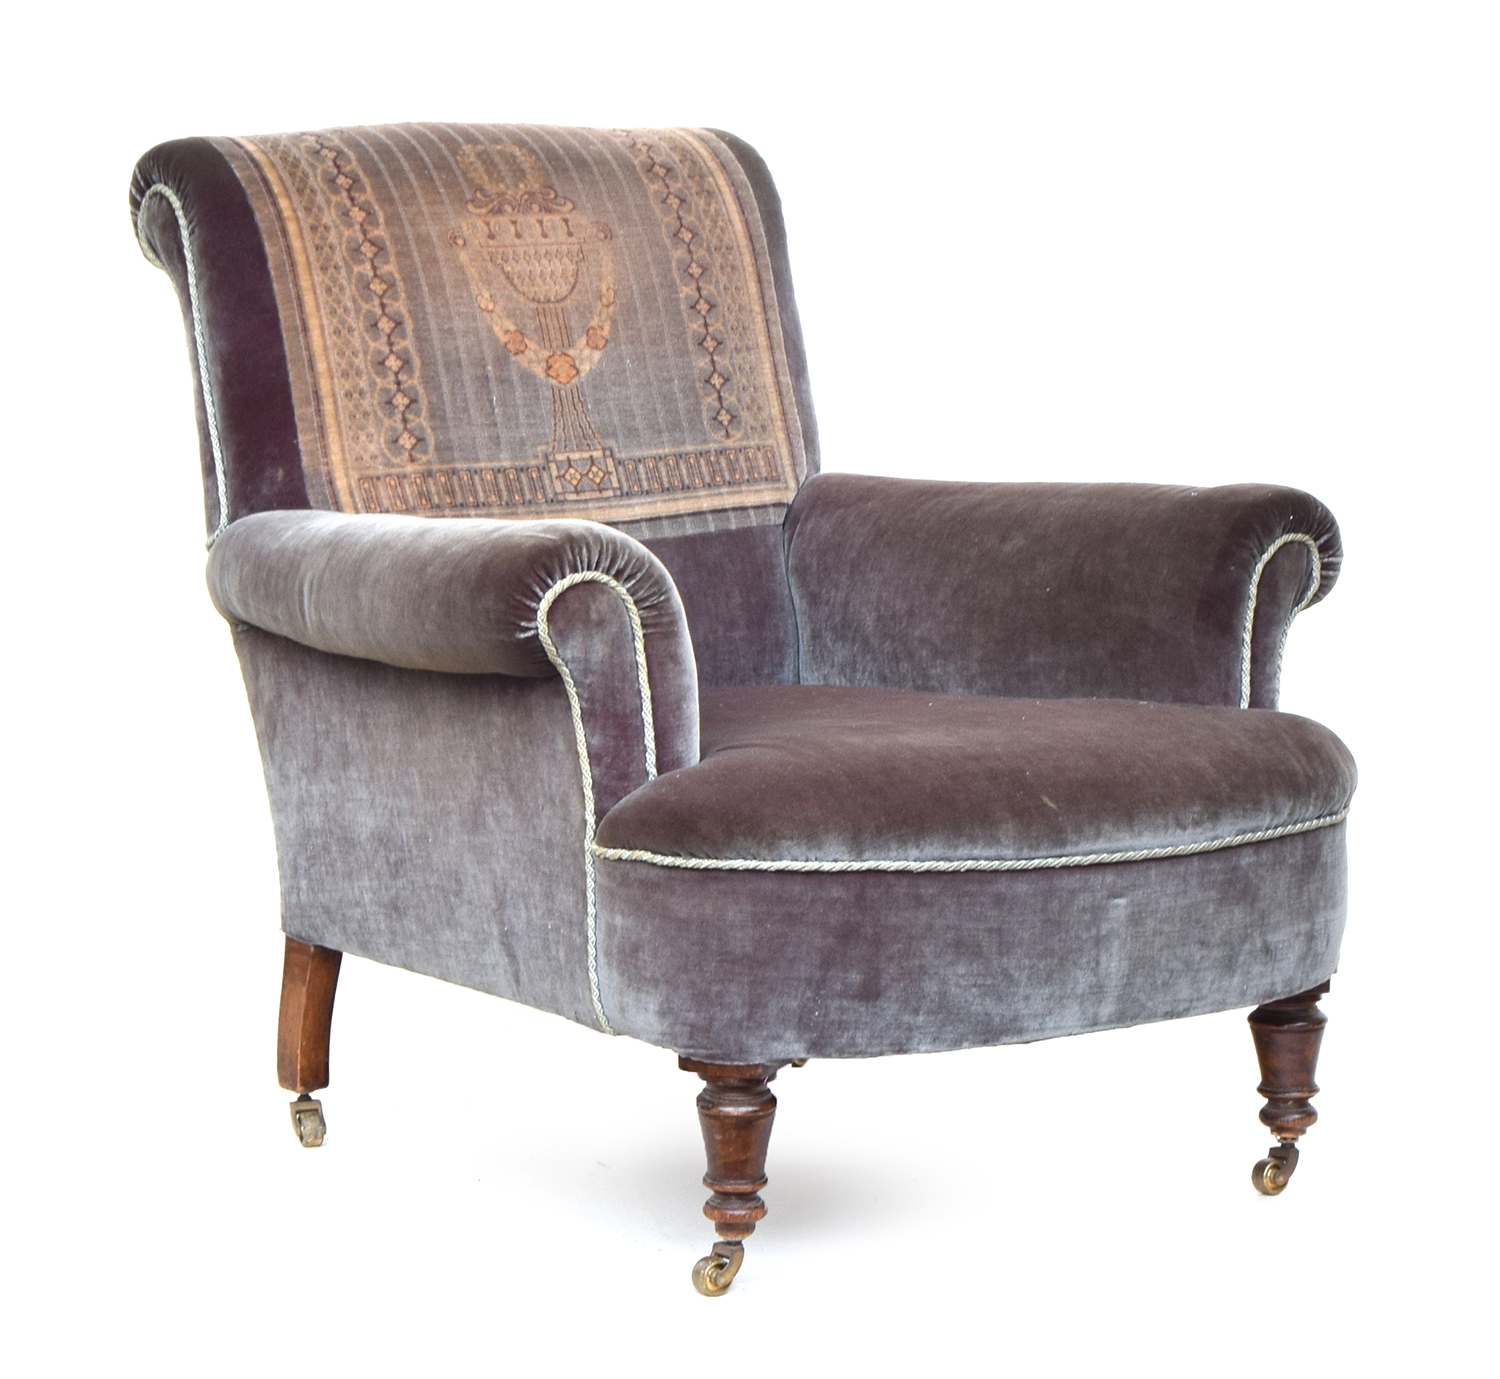 A 19th century armchair, woven carpet panel, with outswept arms on turned casters